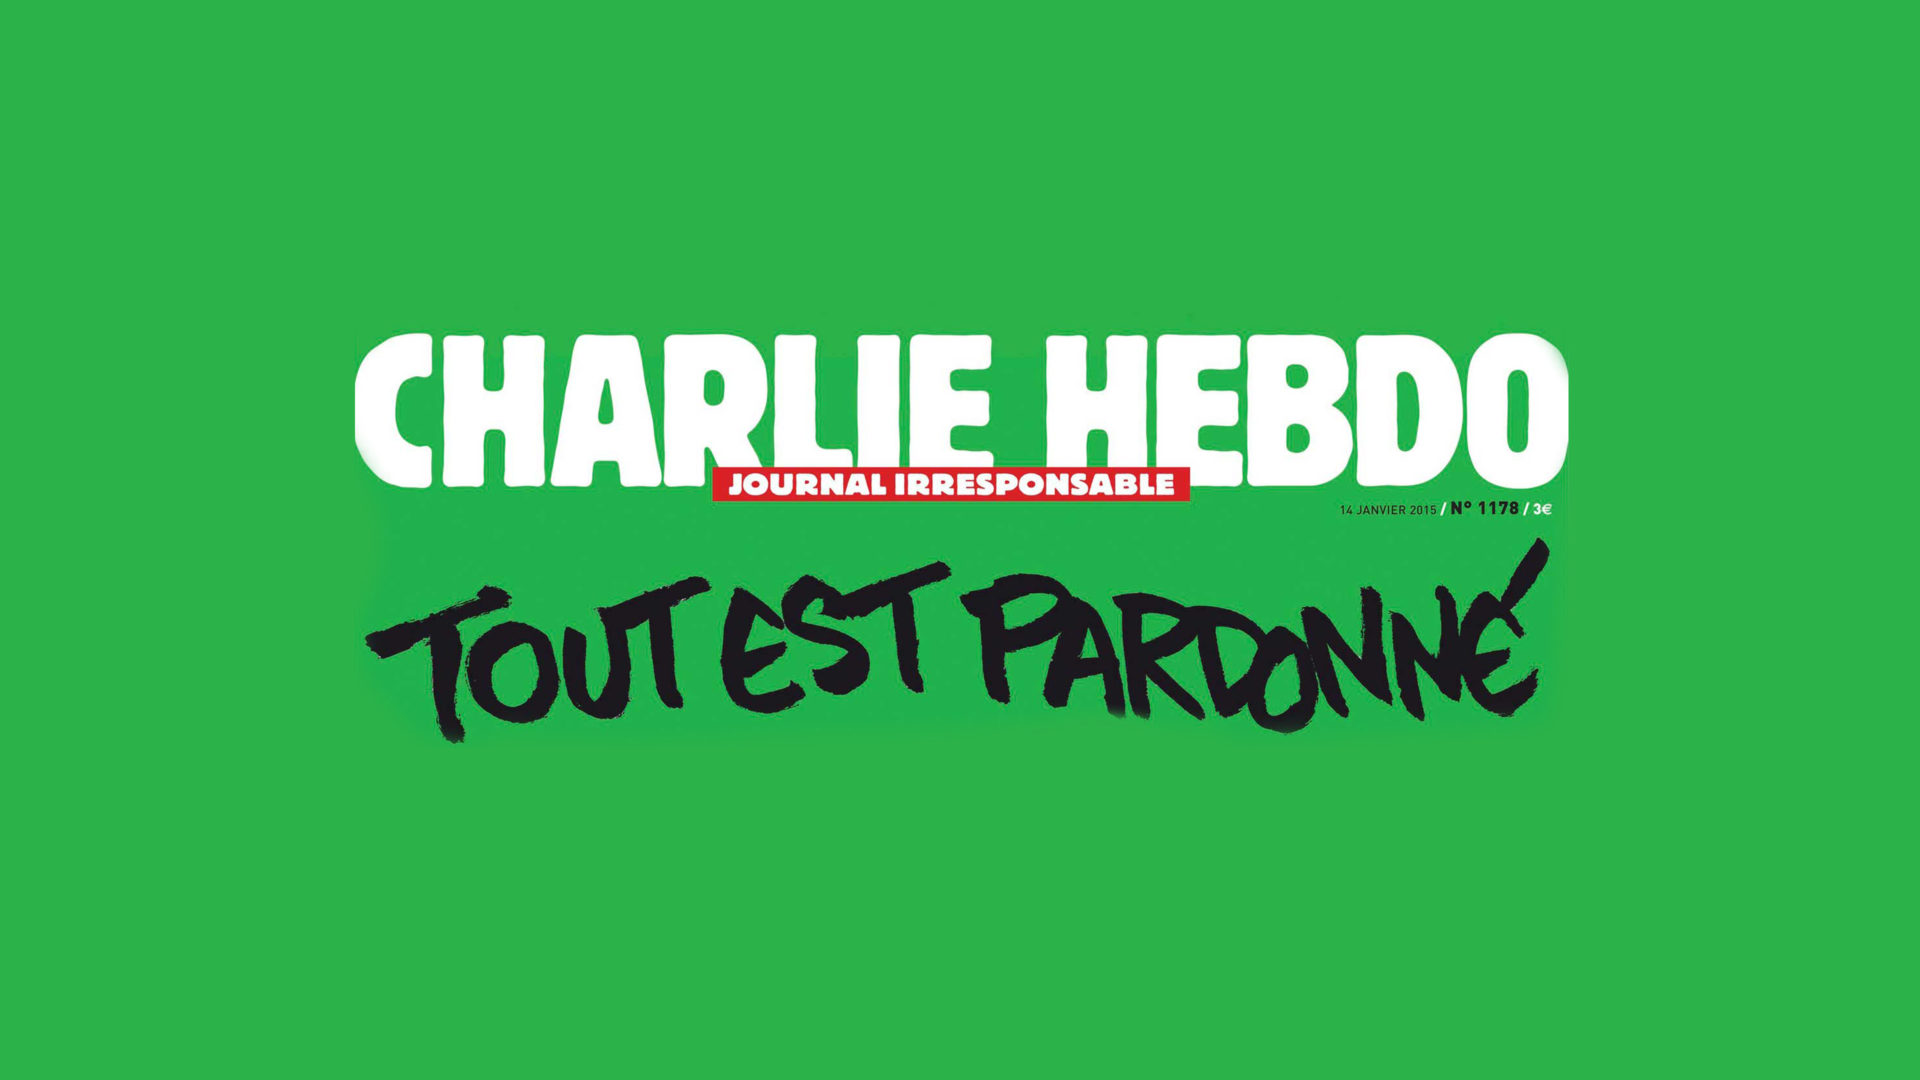 Headline on the cover of Charlie Hebdo after attacks